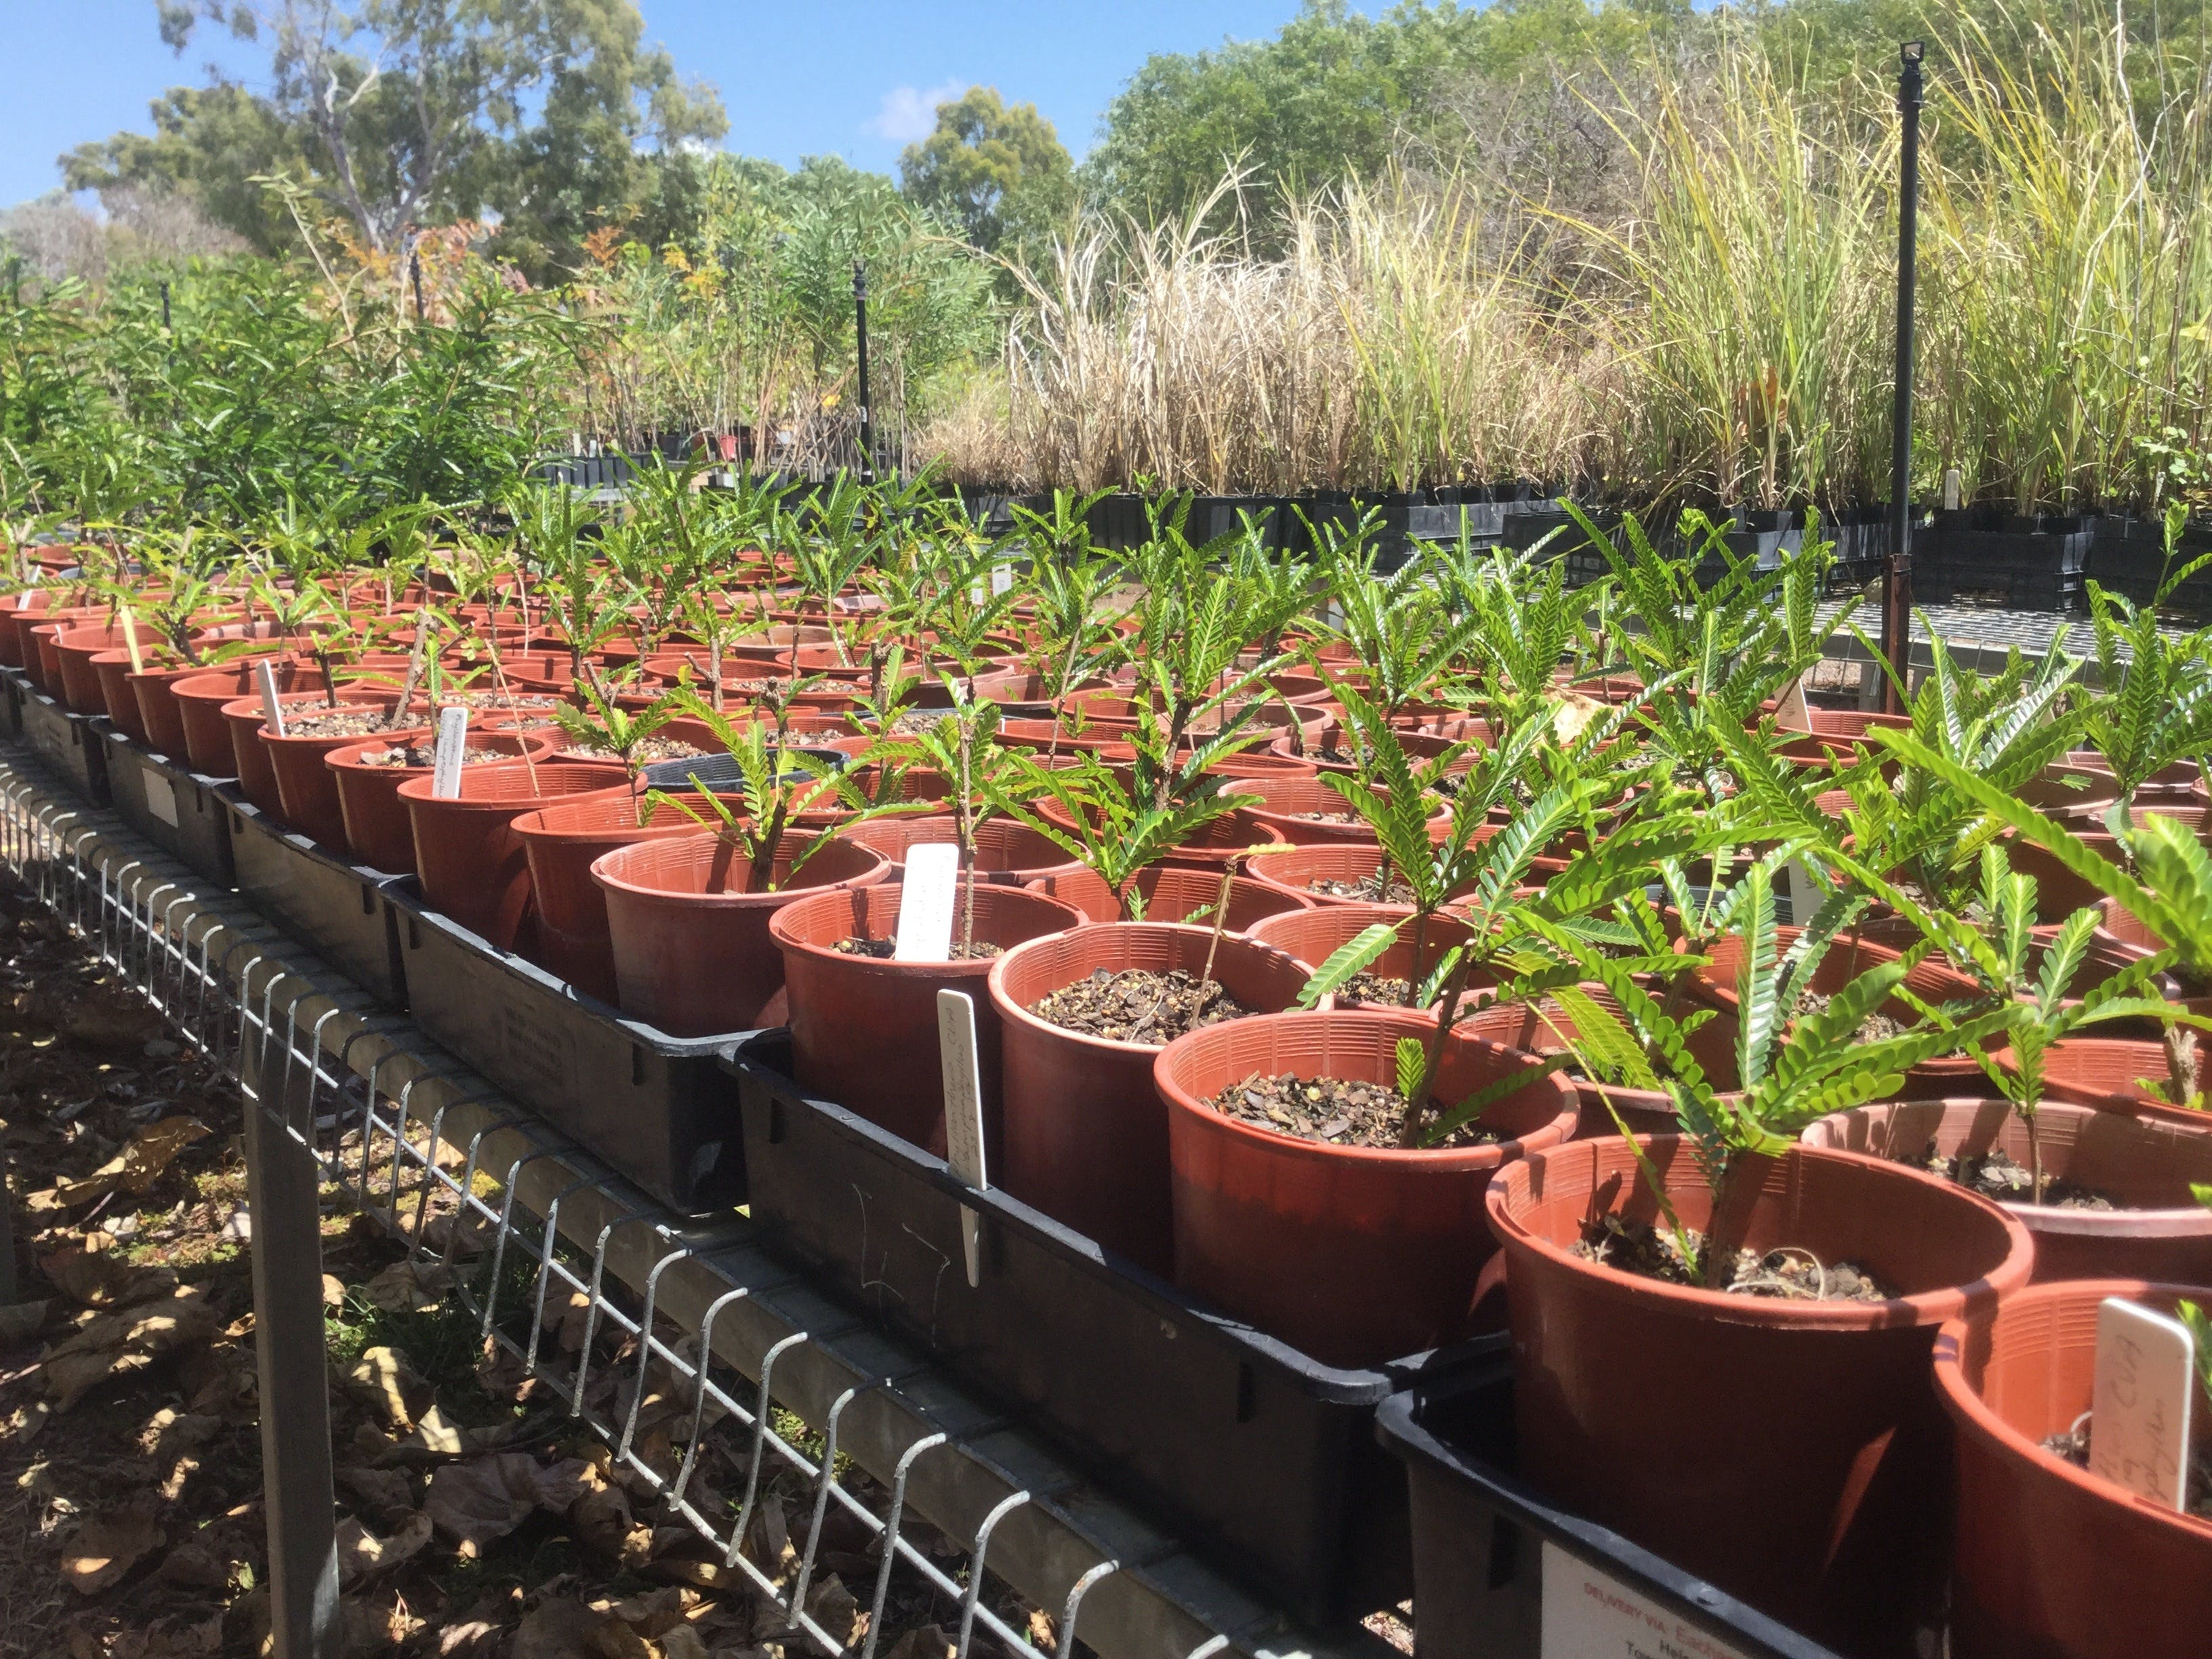 Conservation Volunteers Australia Townsville - Ocean View Nursery Logo and Images